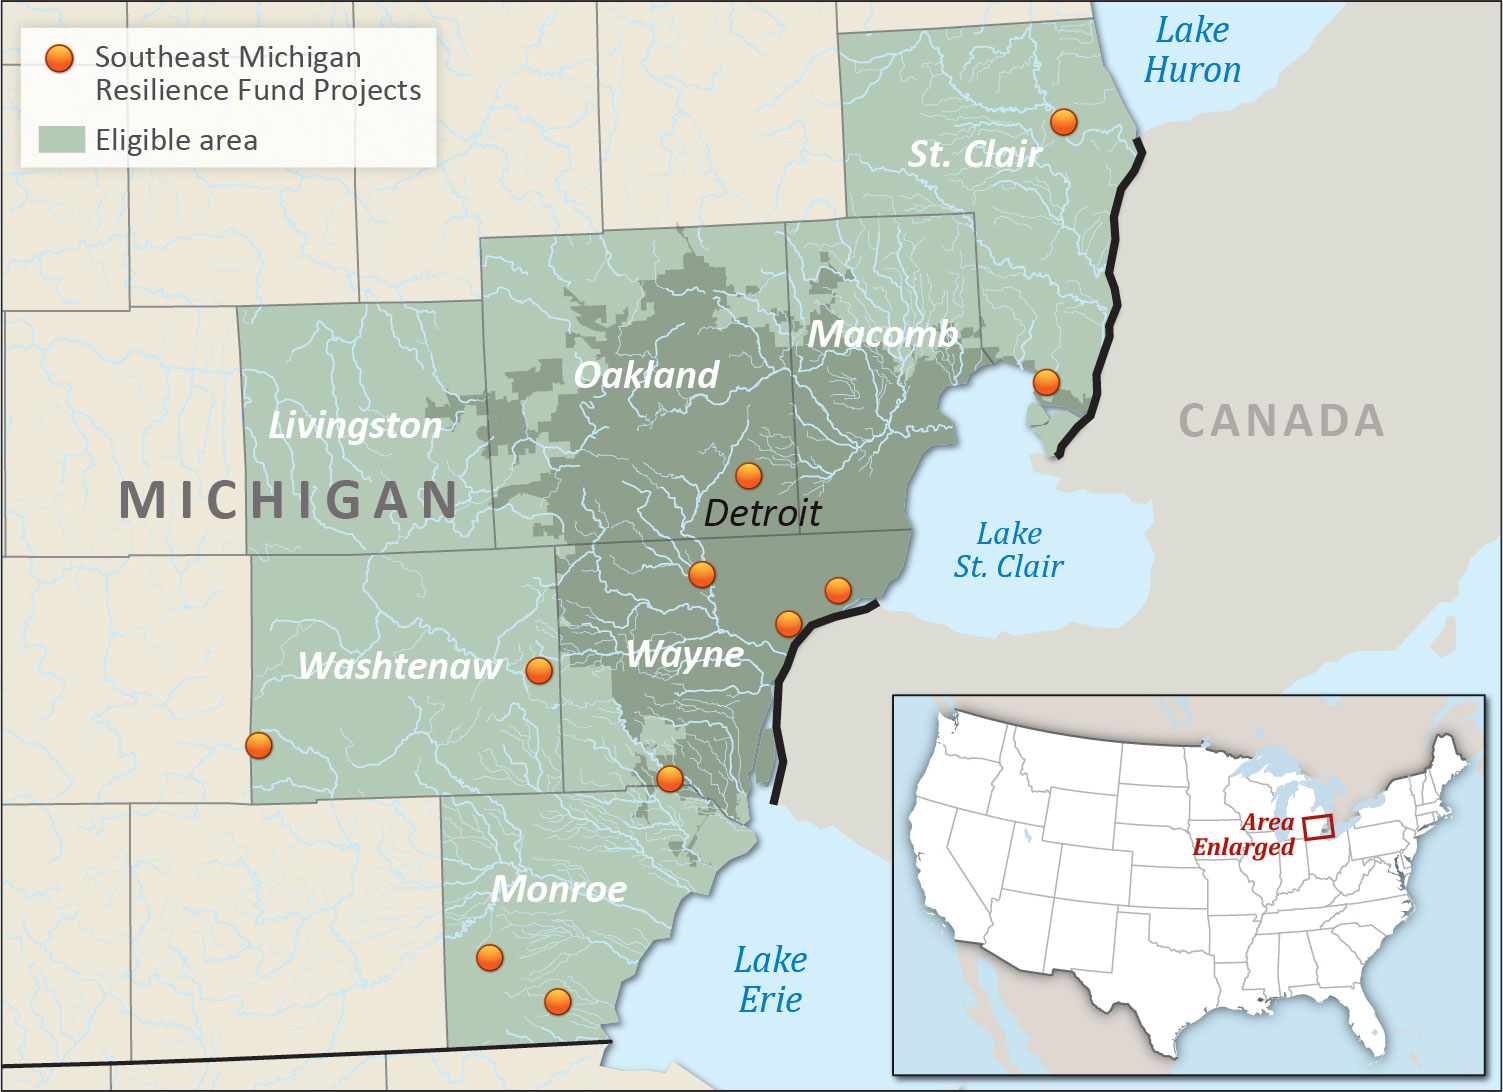 Southeast Michigan Resilience Fund project map